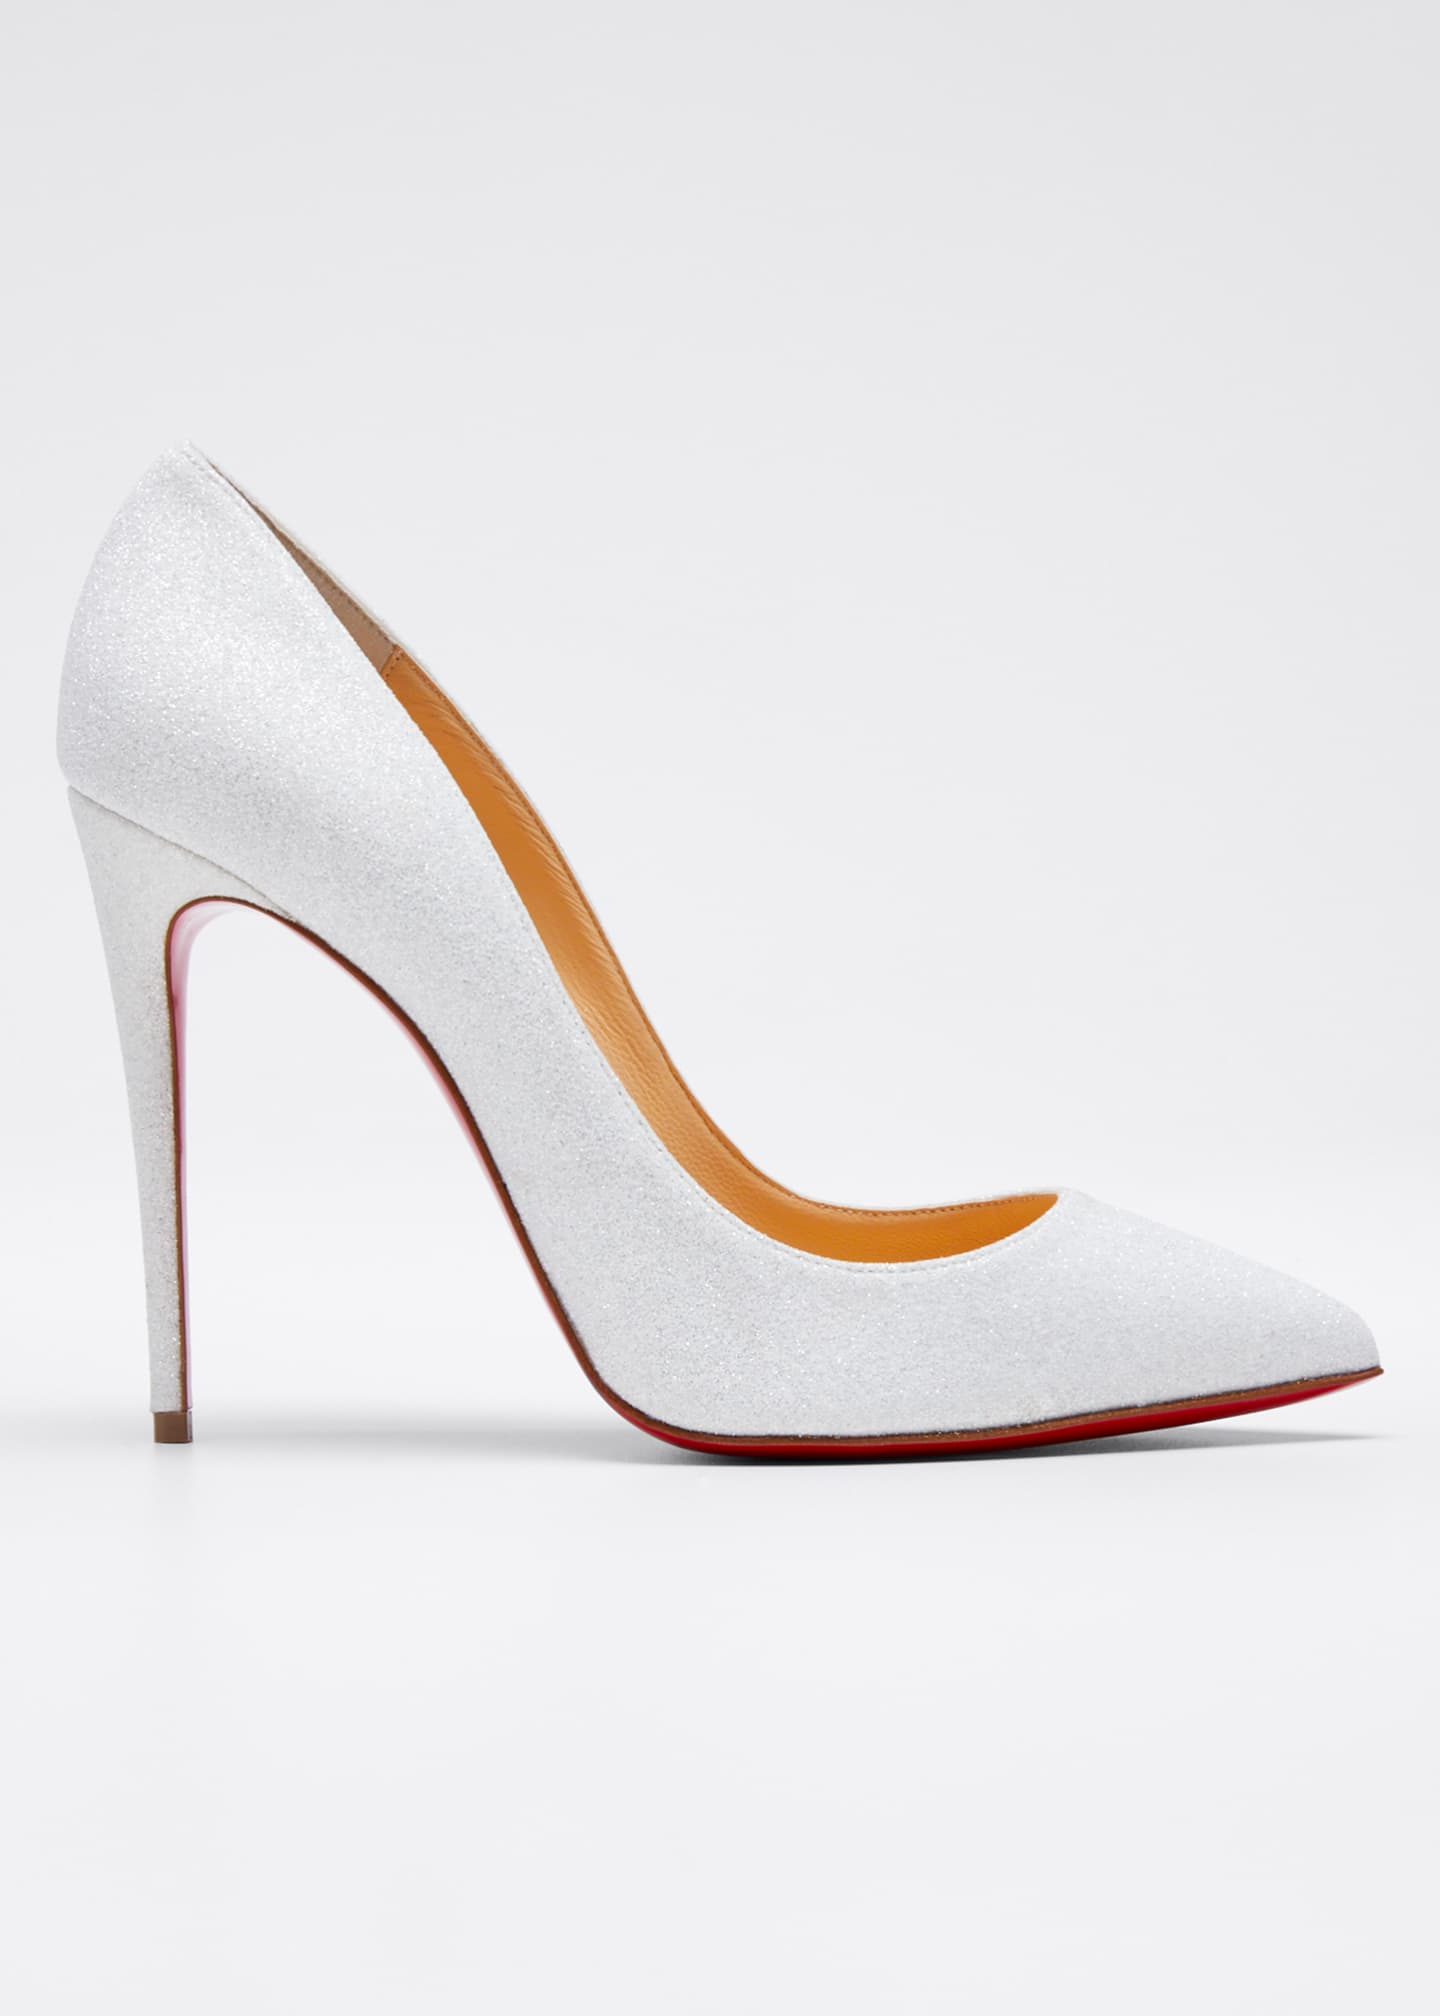 Image 1 of 5: Pigalle Follies Glittered Red Sole Pumps, White